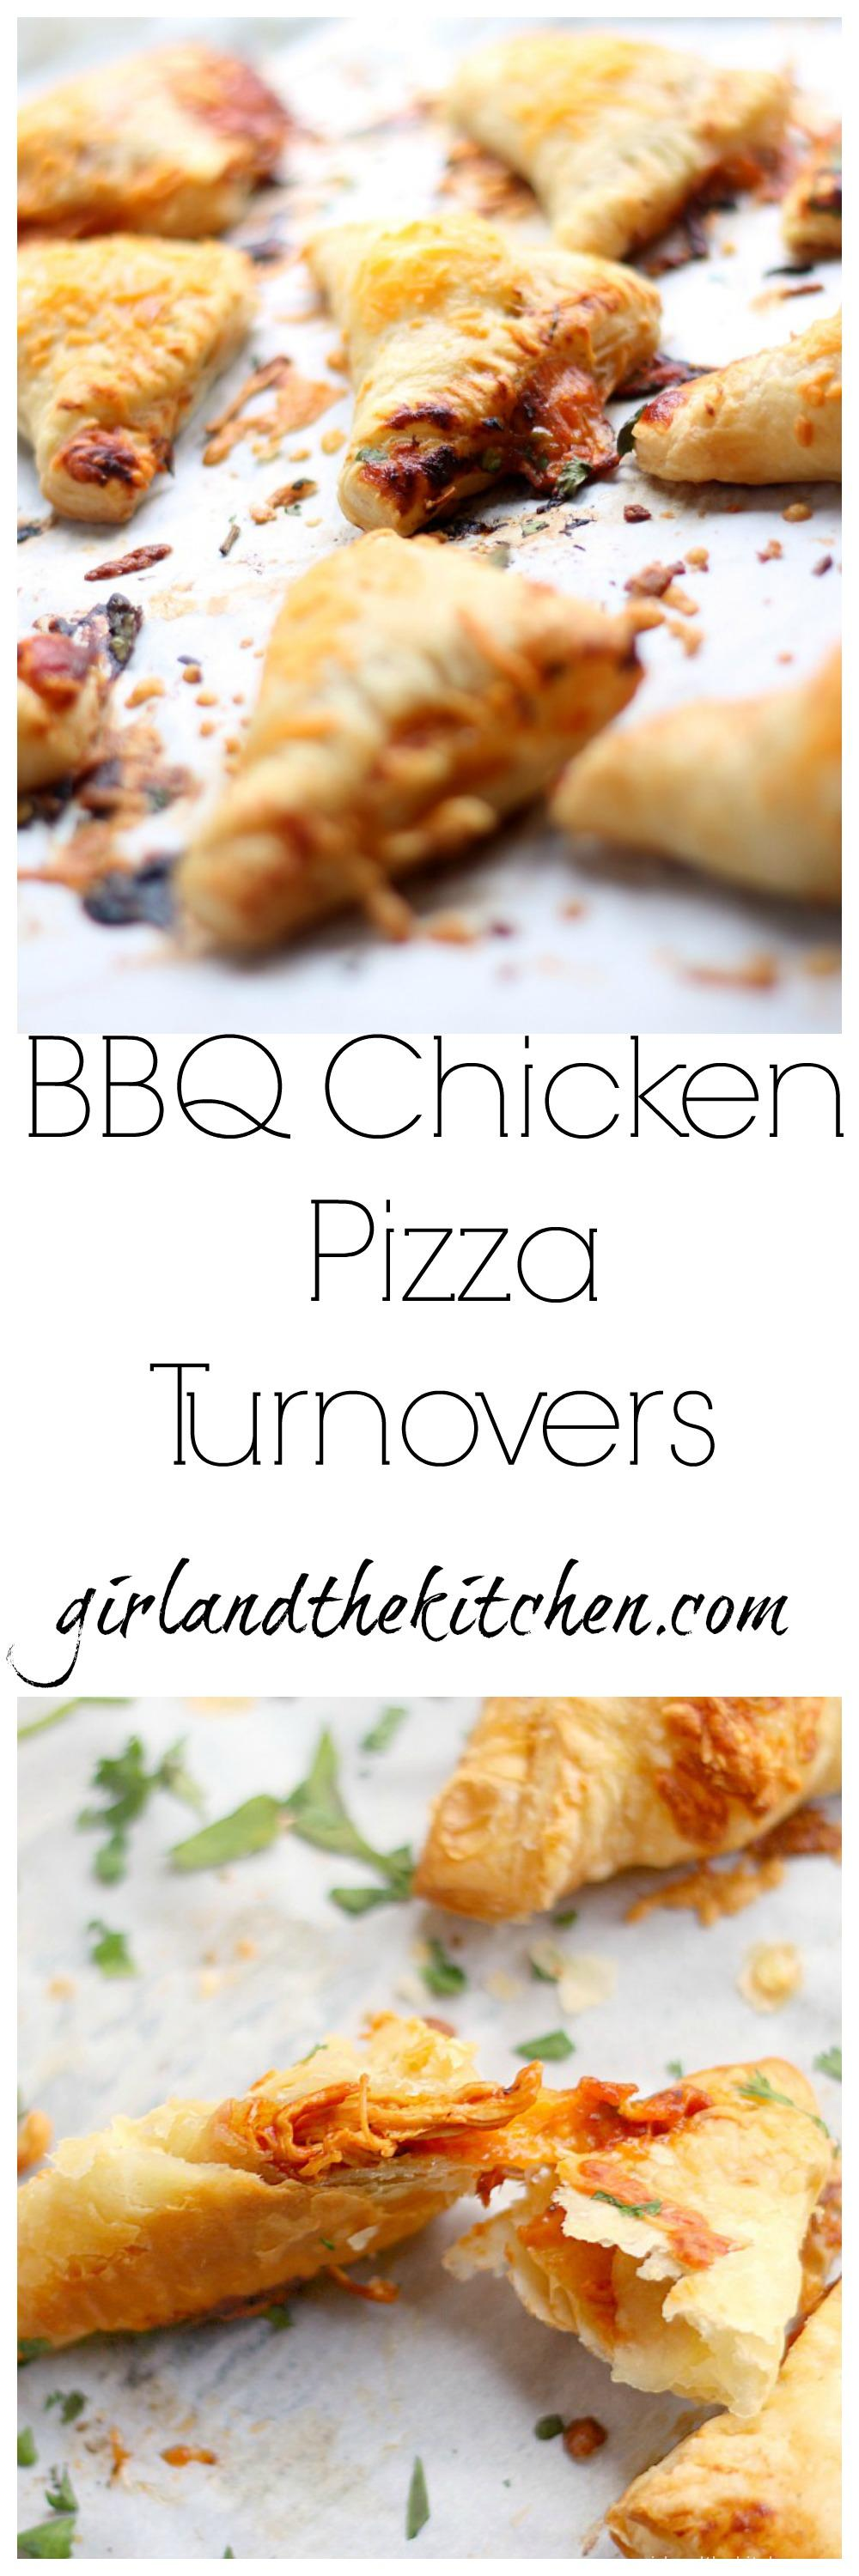 BBQ Chicken Pizza Turnovers Collage